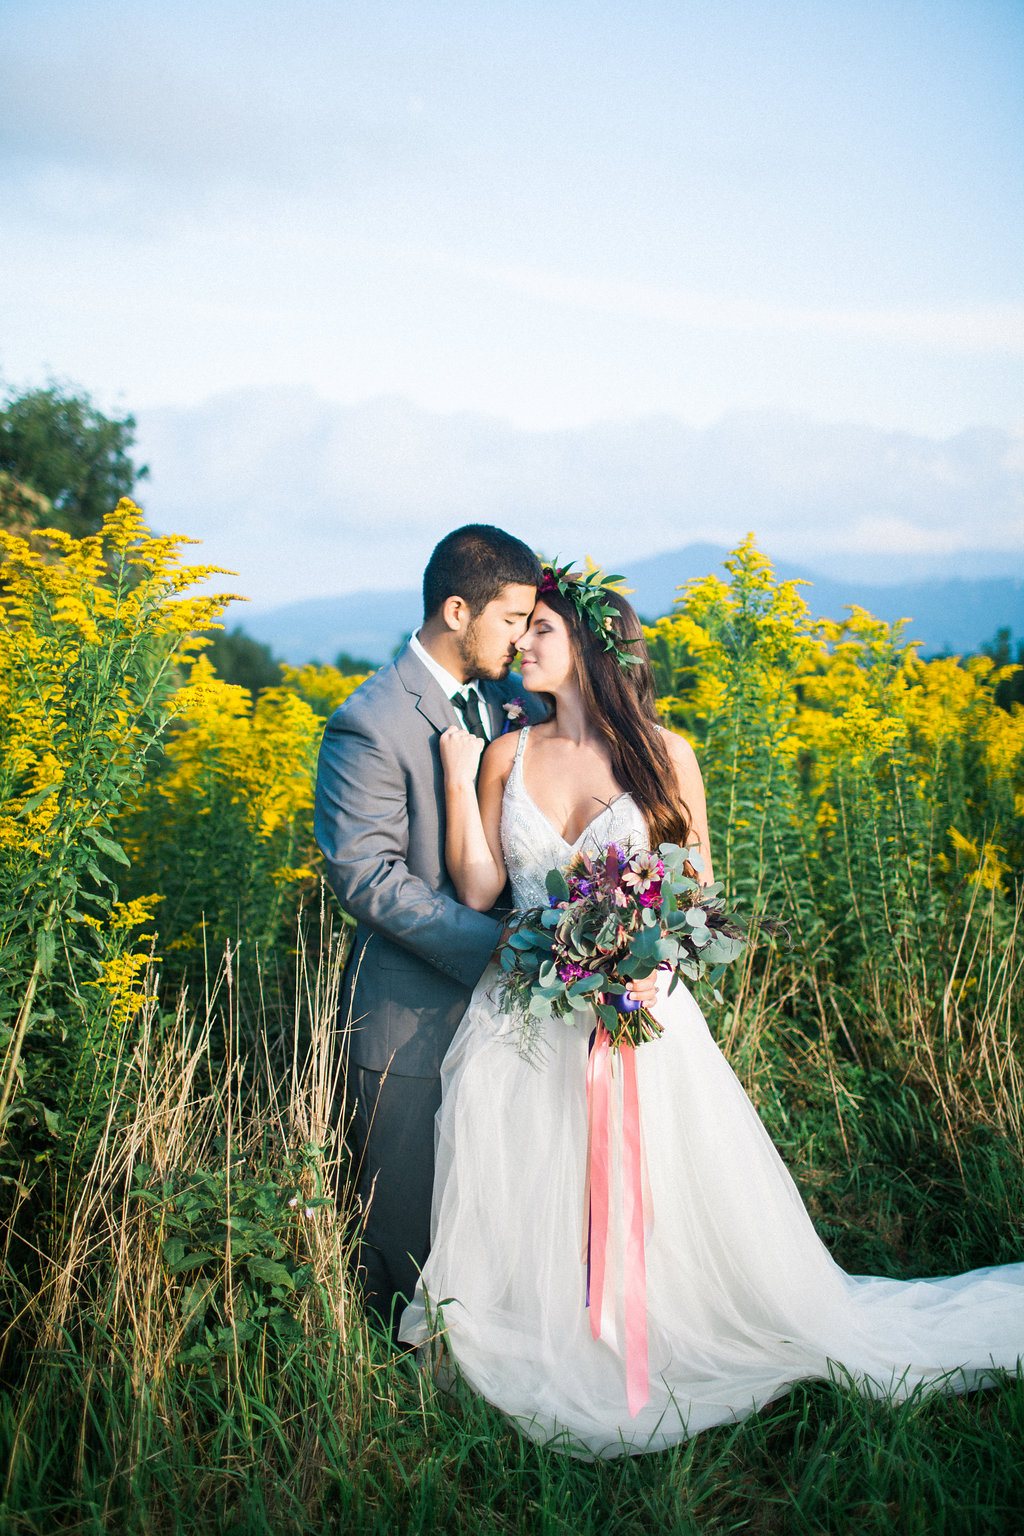 wedding photography - photo by Elizabeth Marie Photos http://ruffledblog.com/v